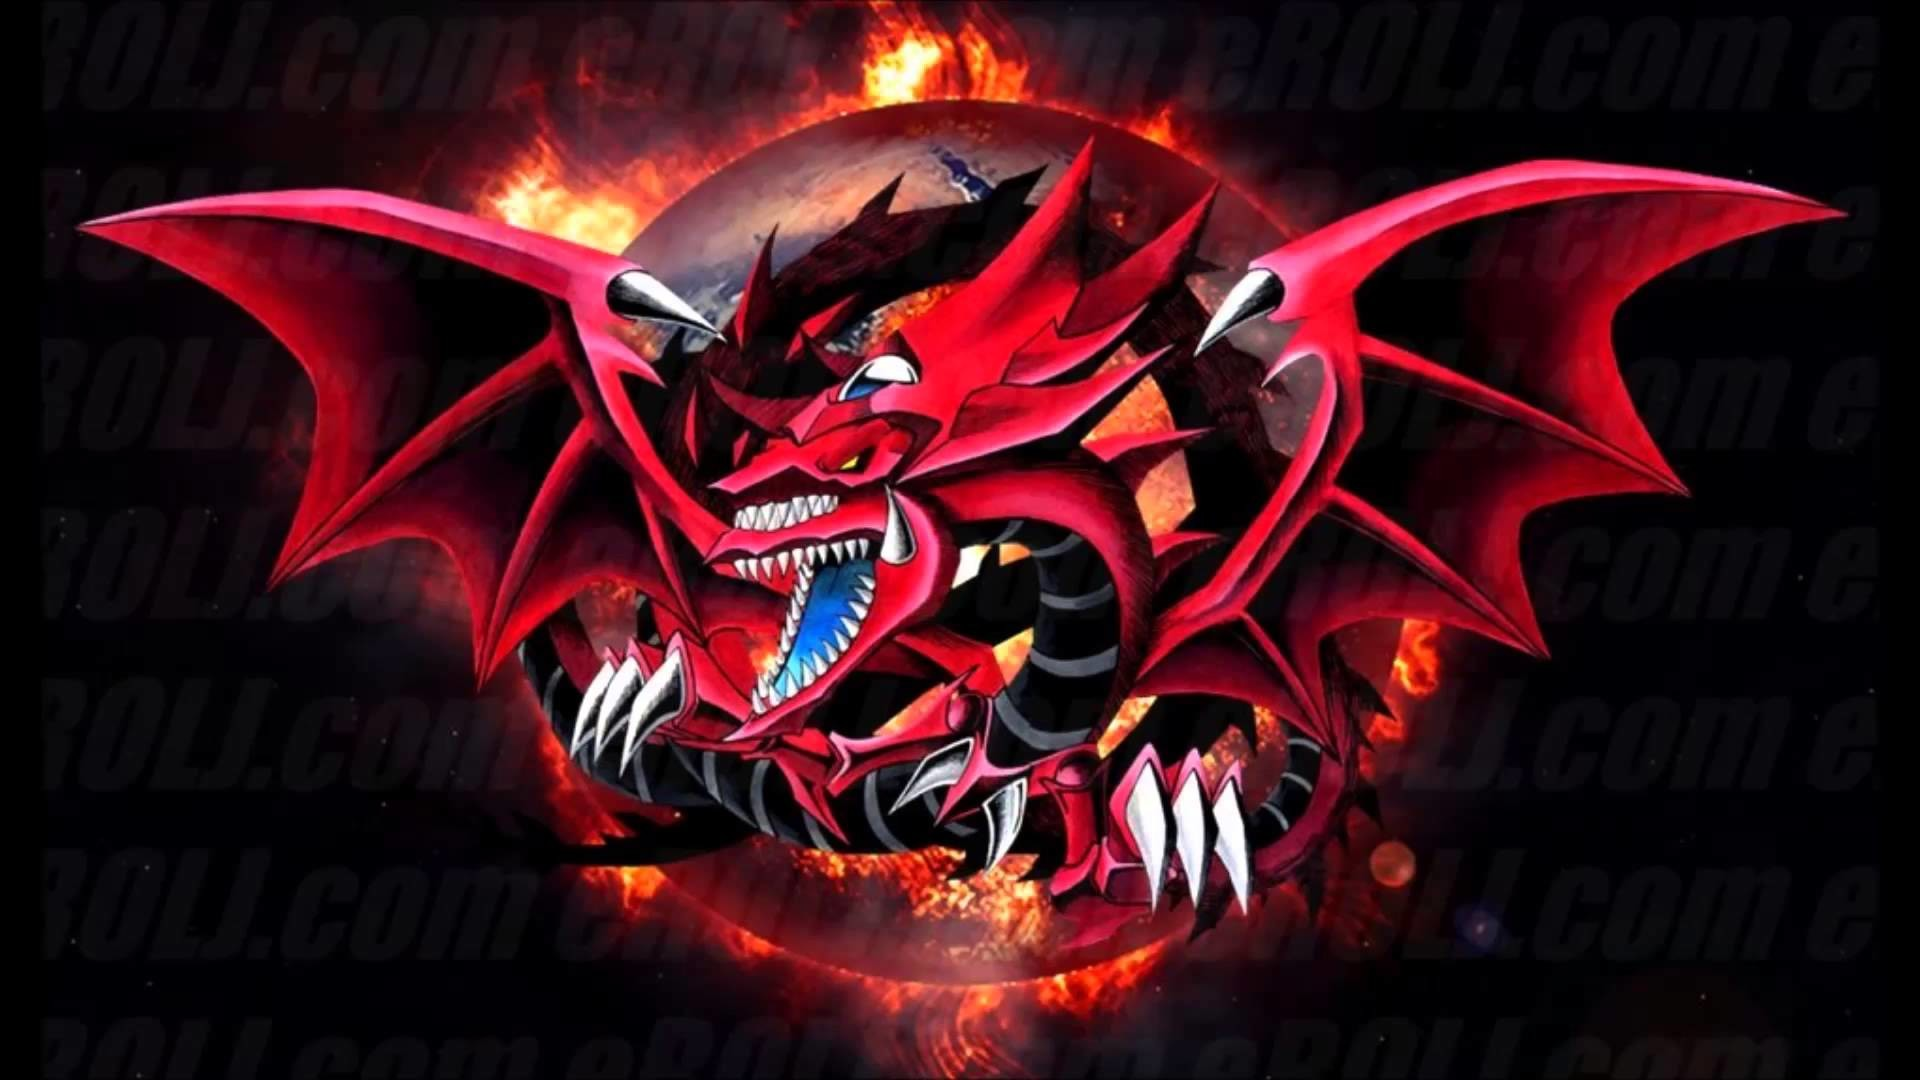 Yugioh Slifer The Sky Dragon Wallpaper Wallpapertag